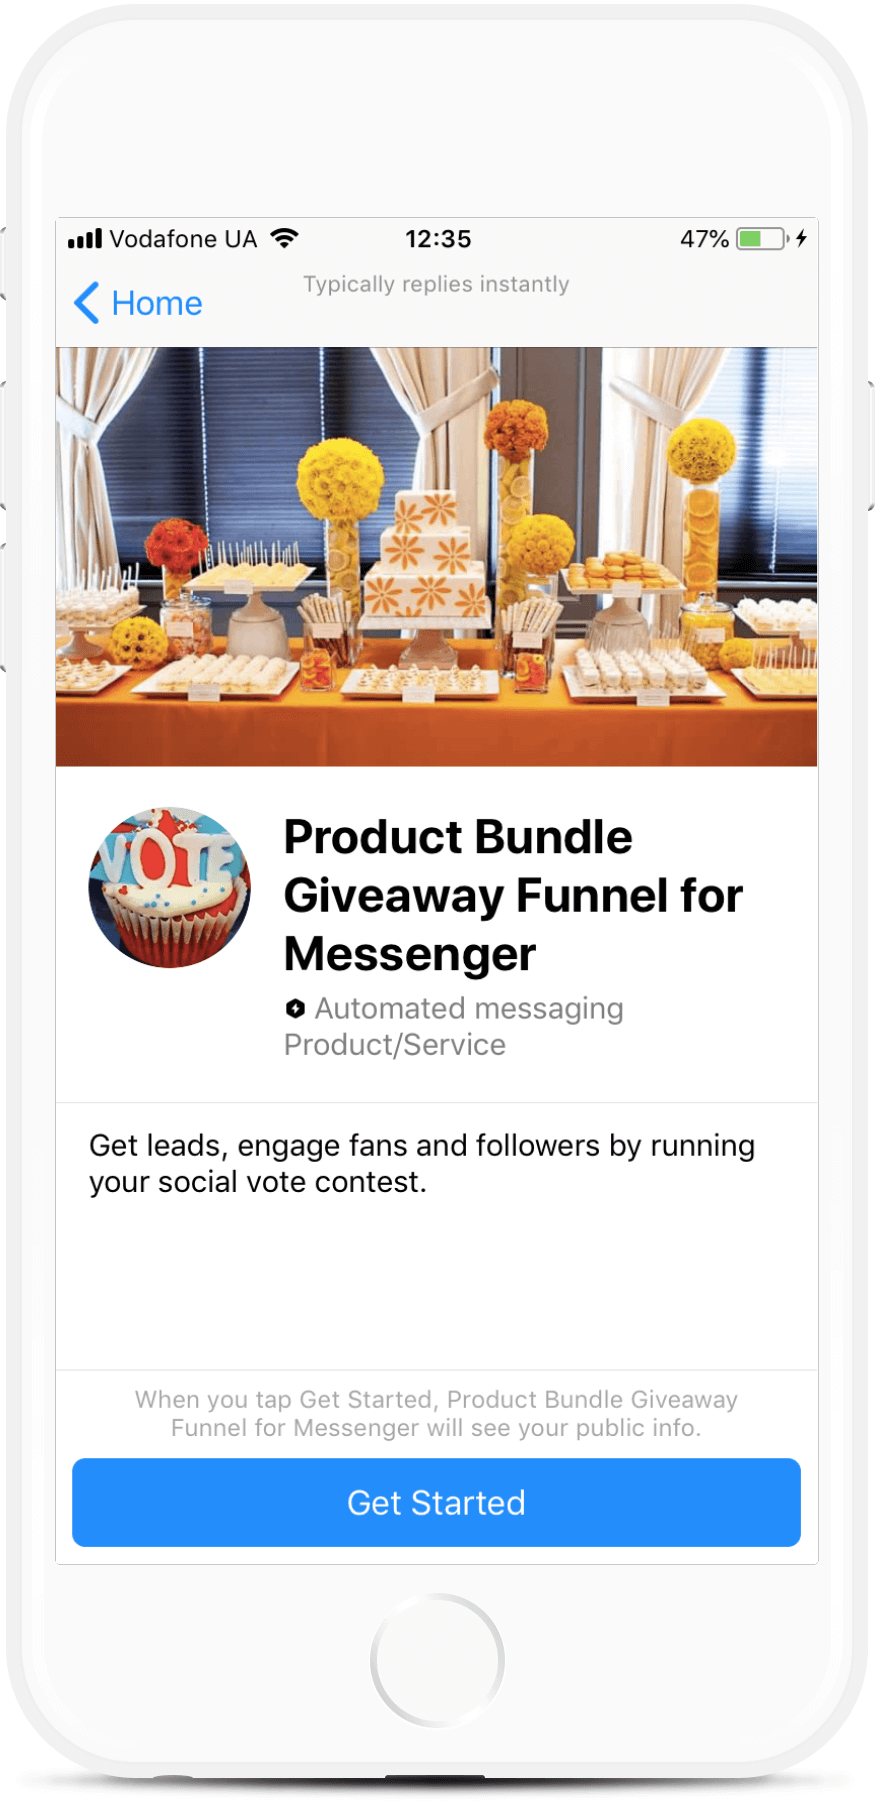 Vote Contest Giveaway Funnel for Messenger